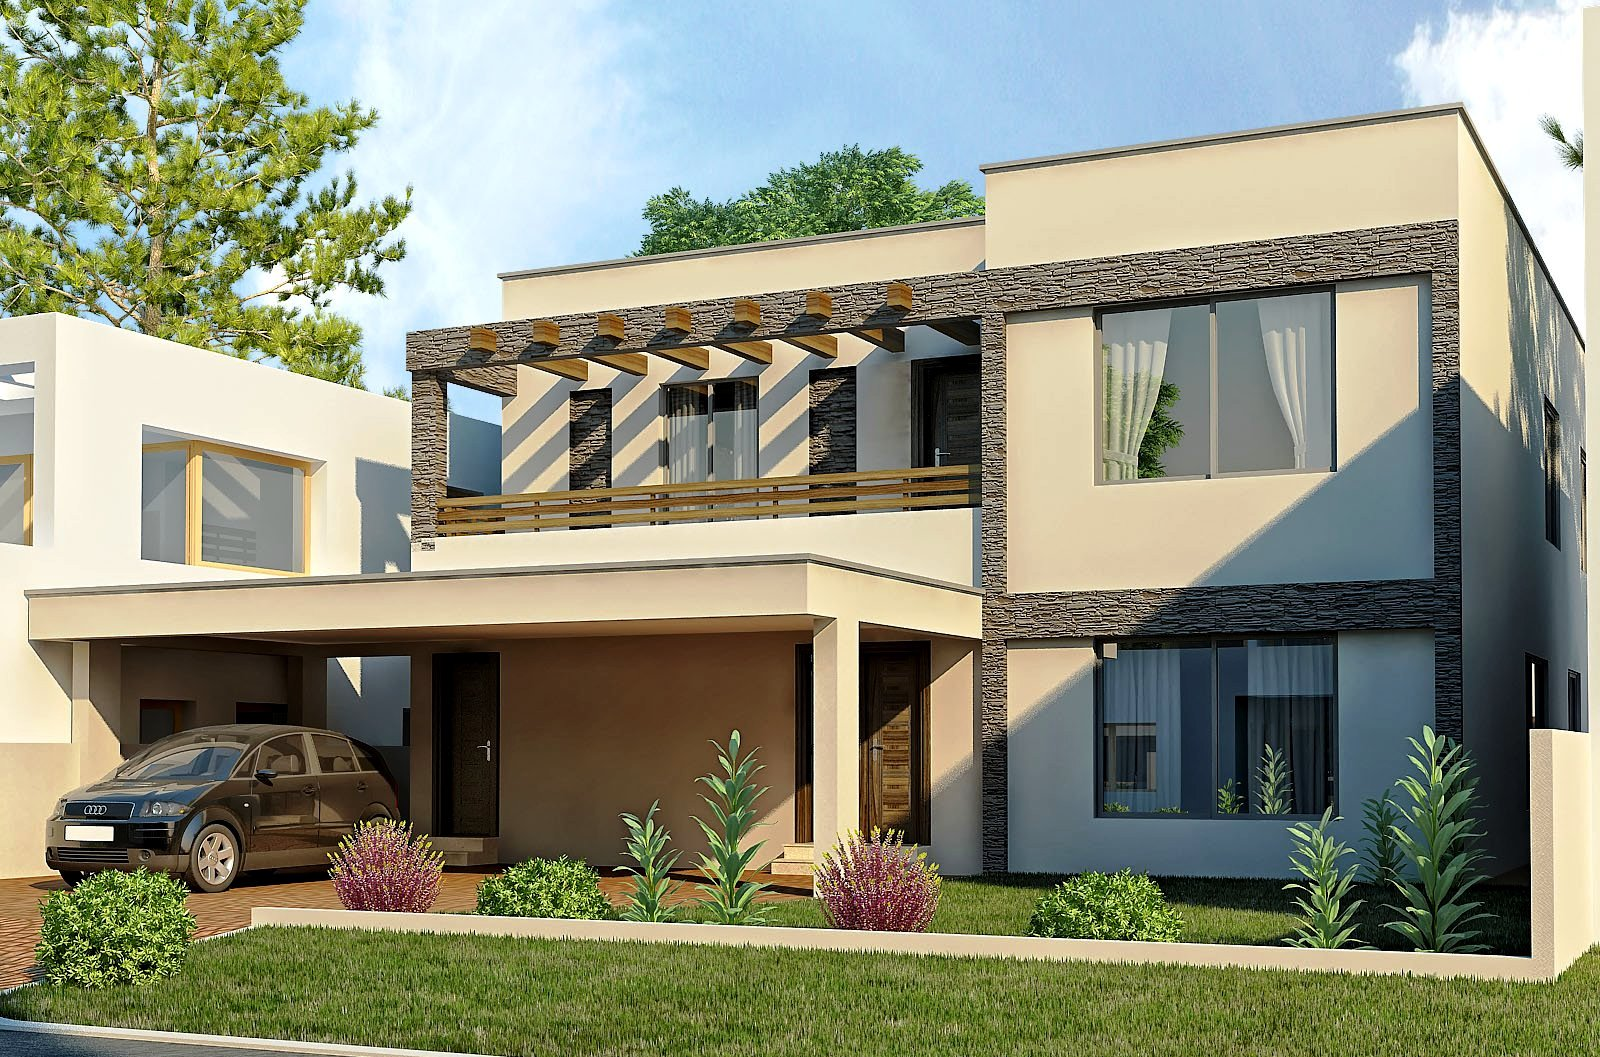 New home designs latest modern homes exterior designs views Exterior home design ideas 2015